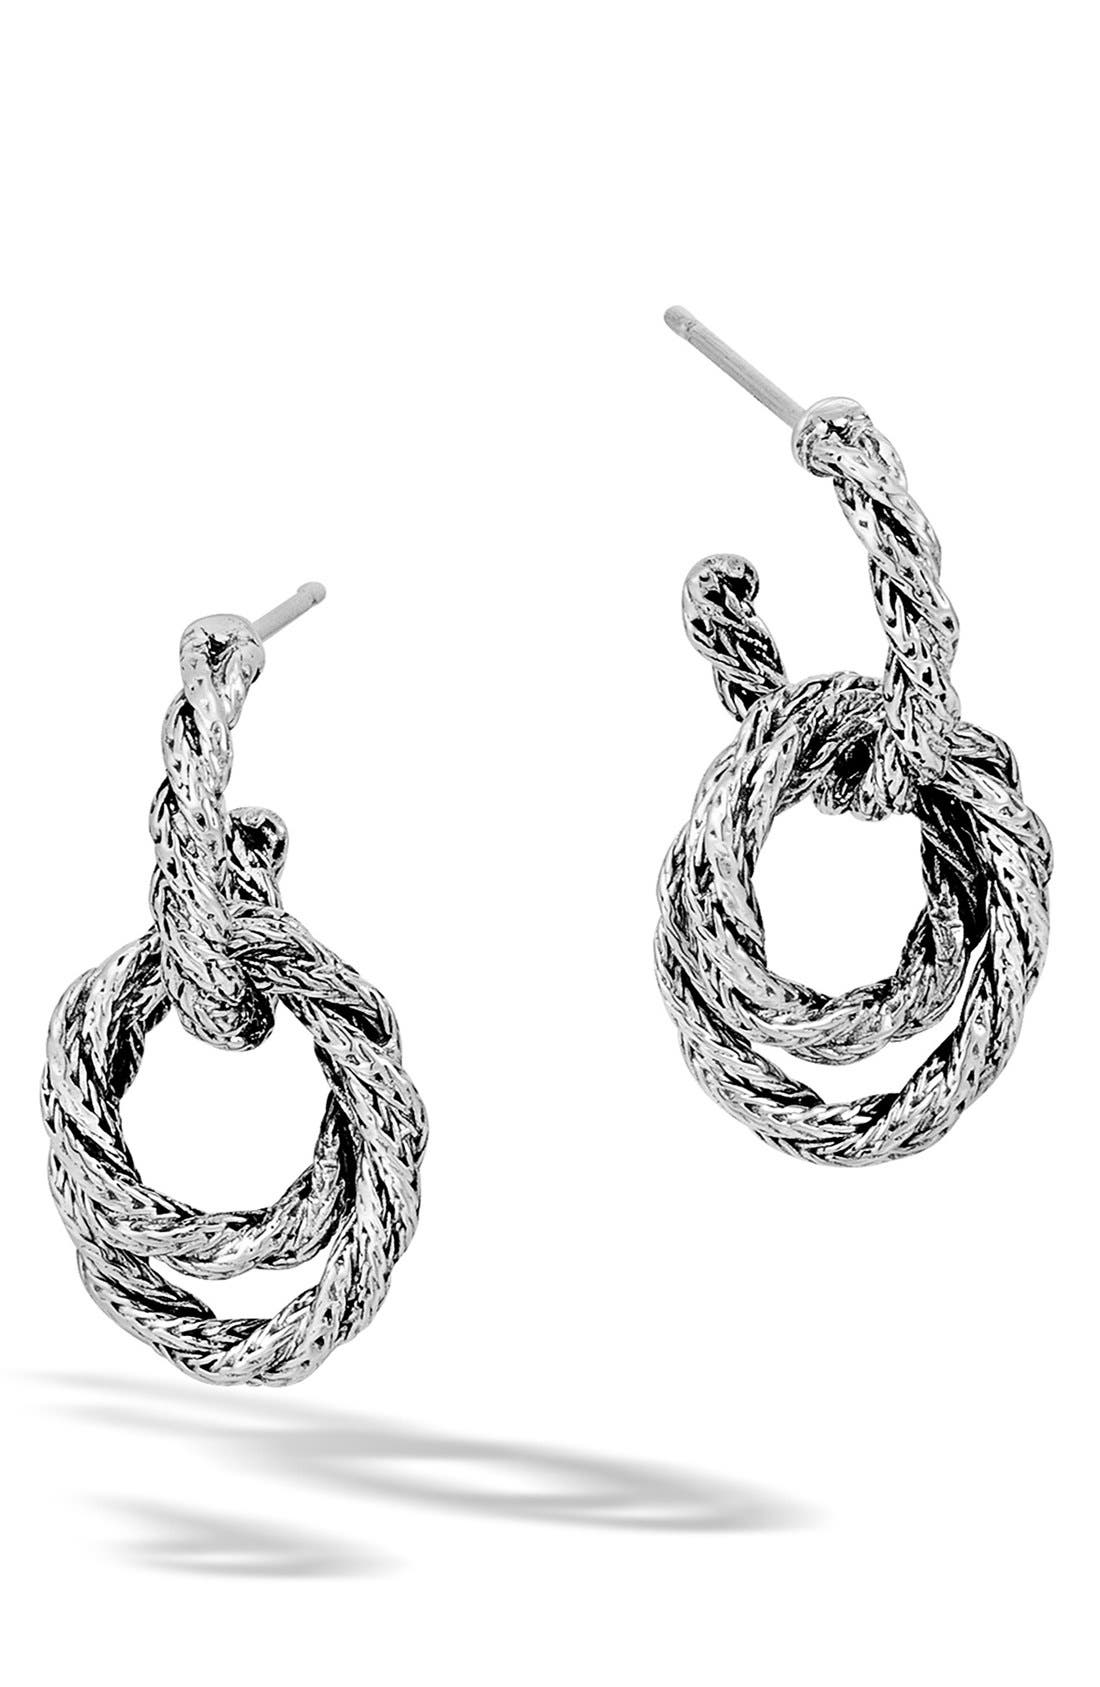 'Classic Chain' Double Twisted Hoop Earrings,                             Main thumbnail 1, color,                             Silver